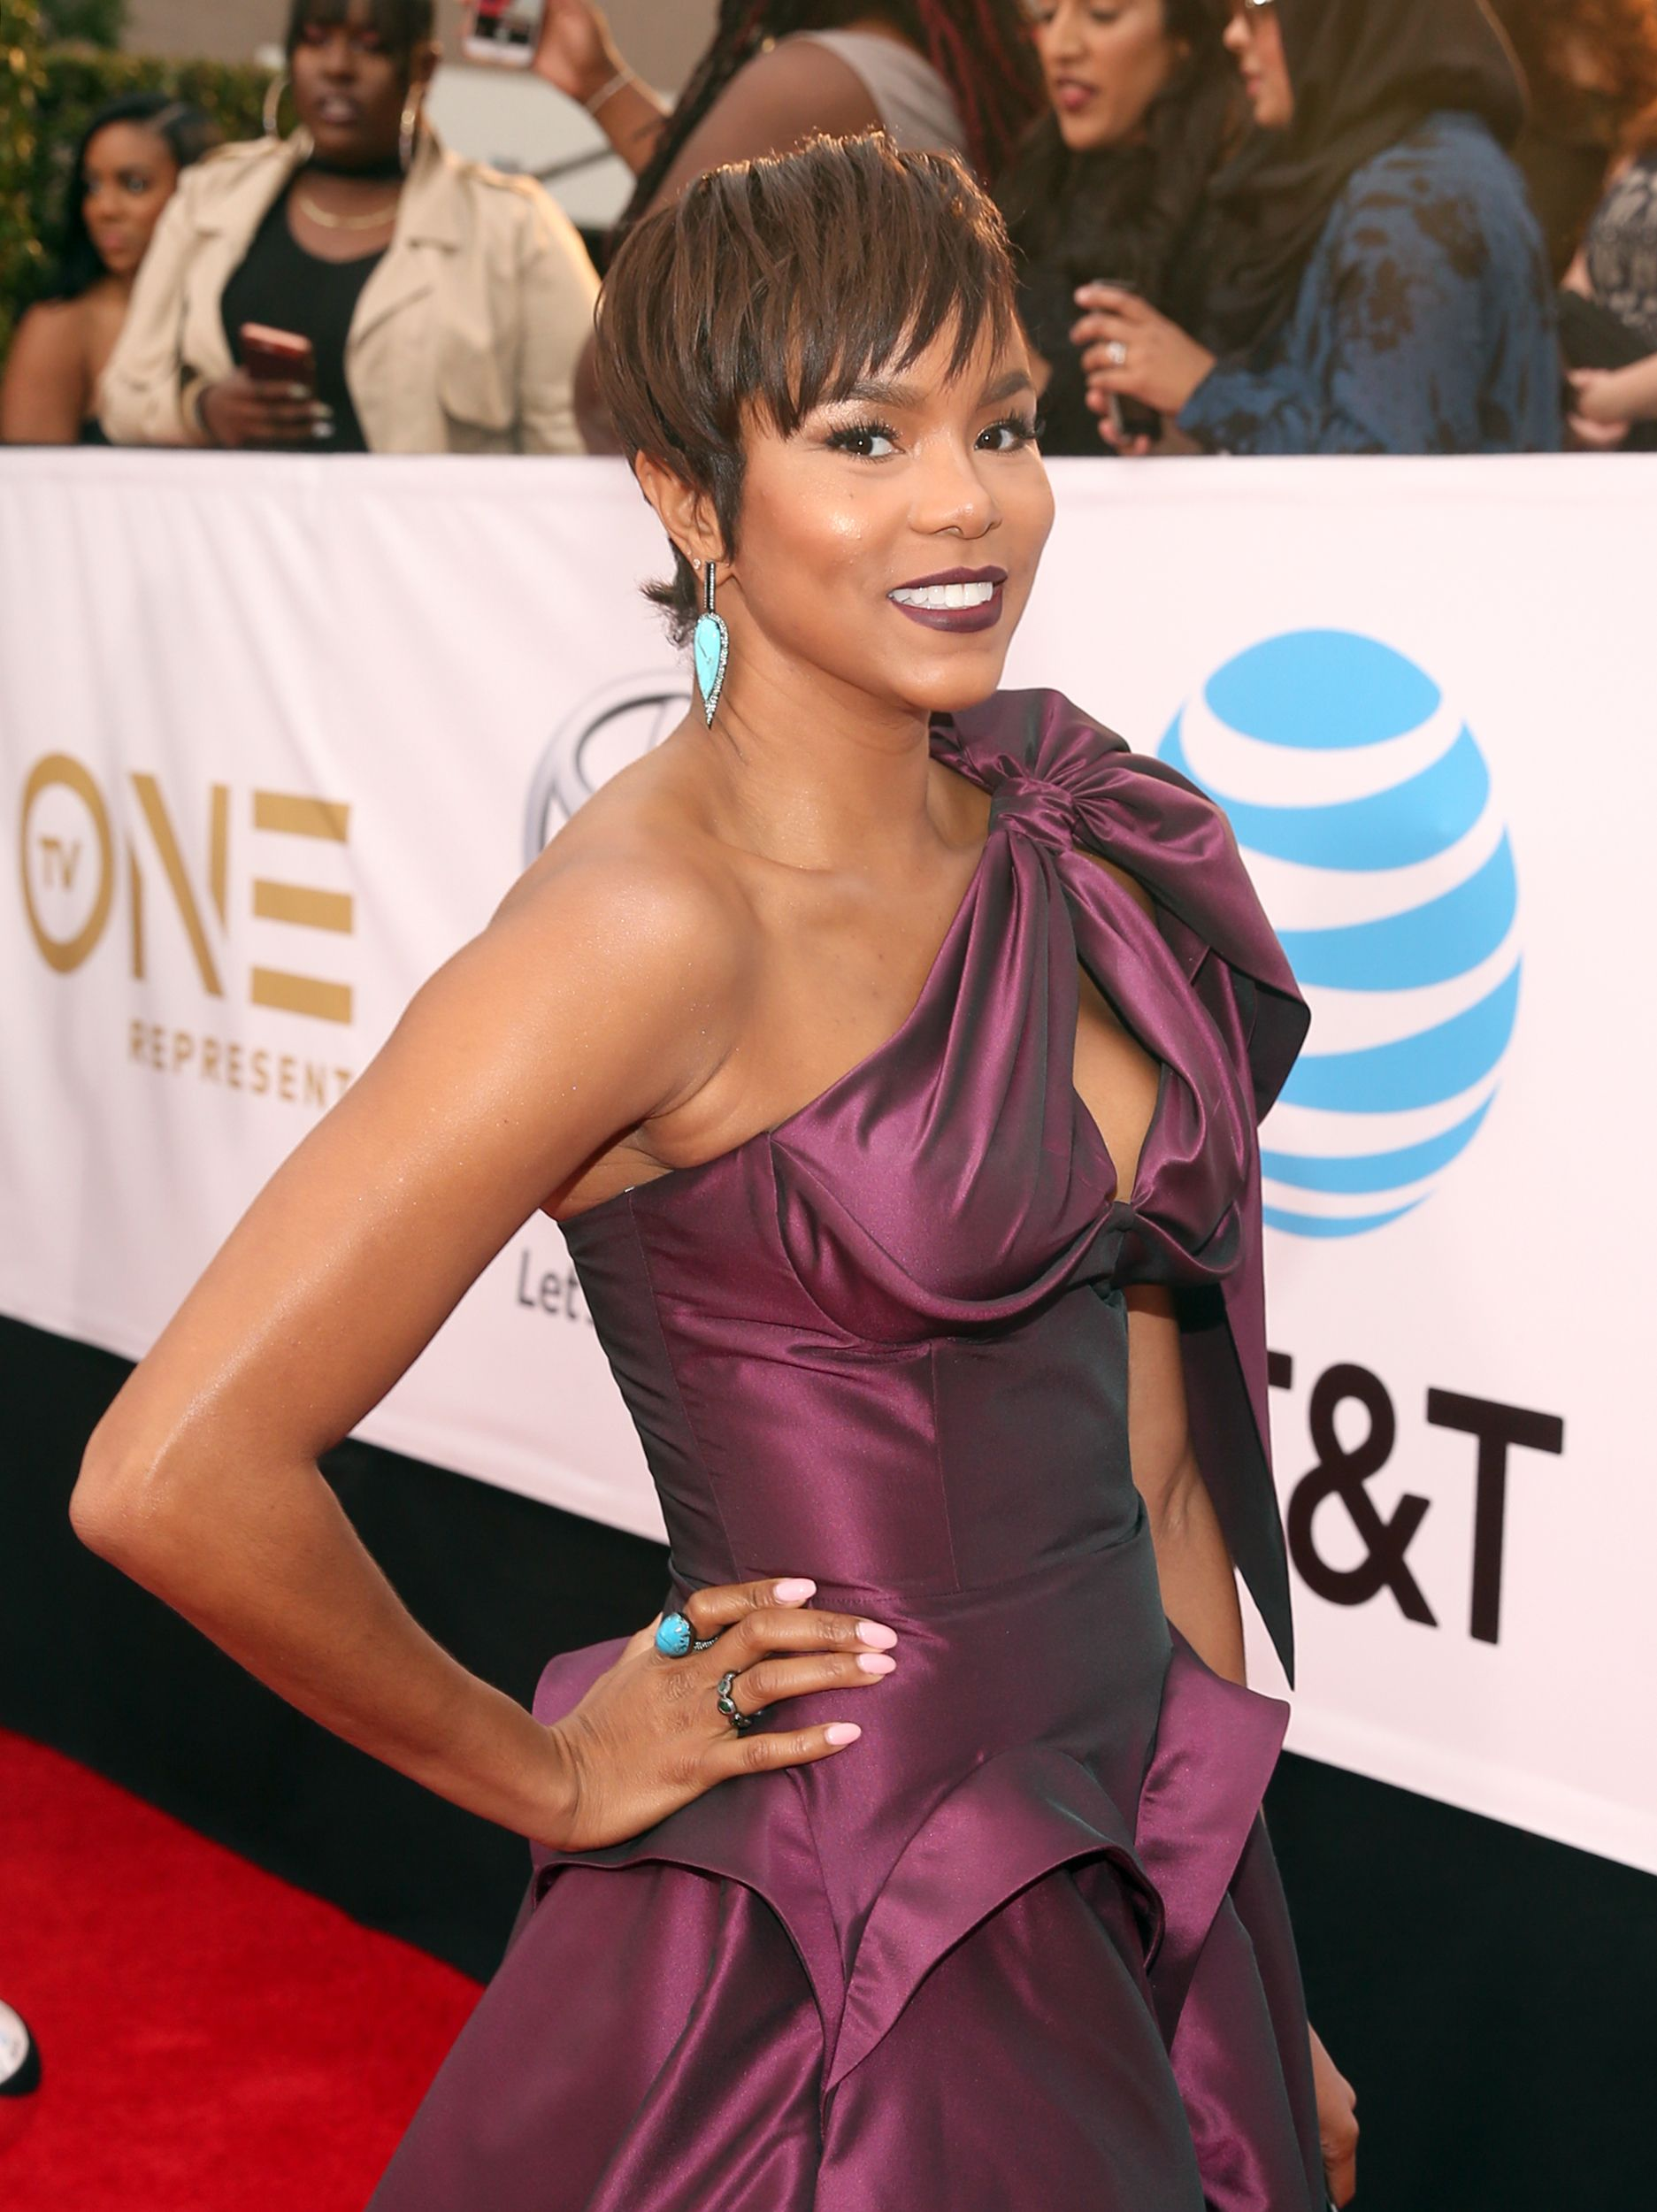 LeToya Luckett at the NAACP Image Awards on January 15, 2018 in Pasadena. | Photo: Getty Images